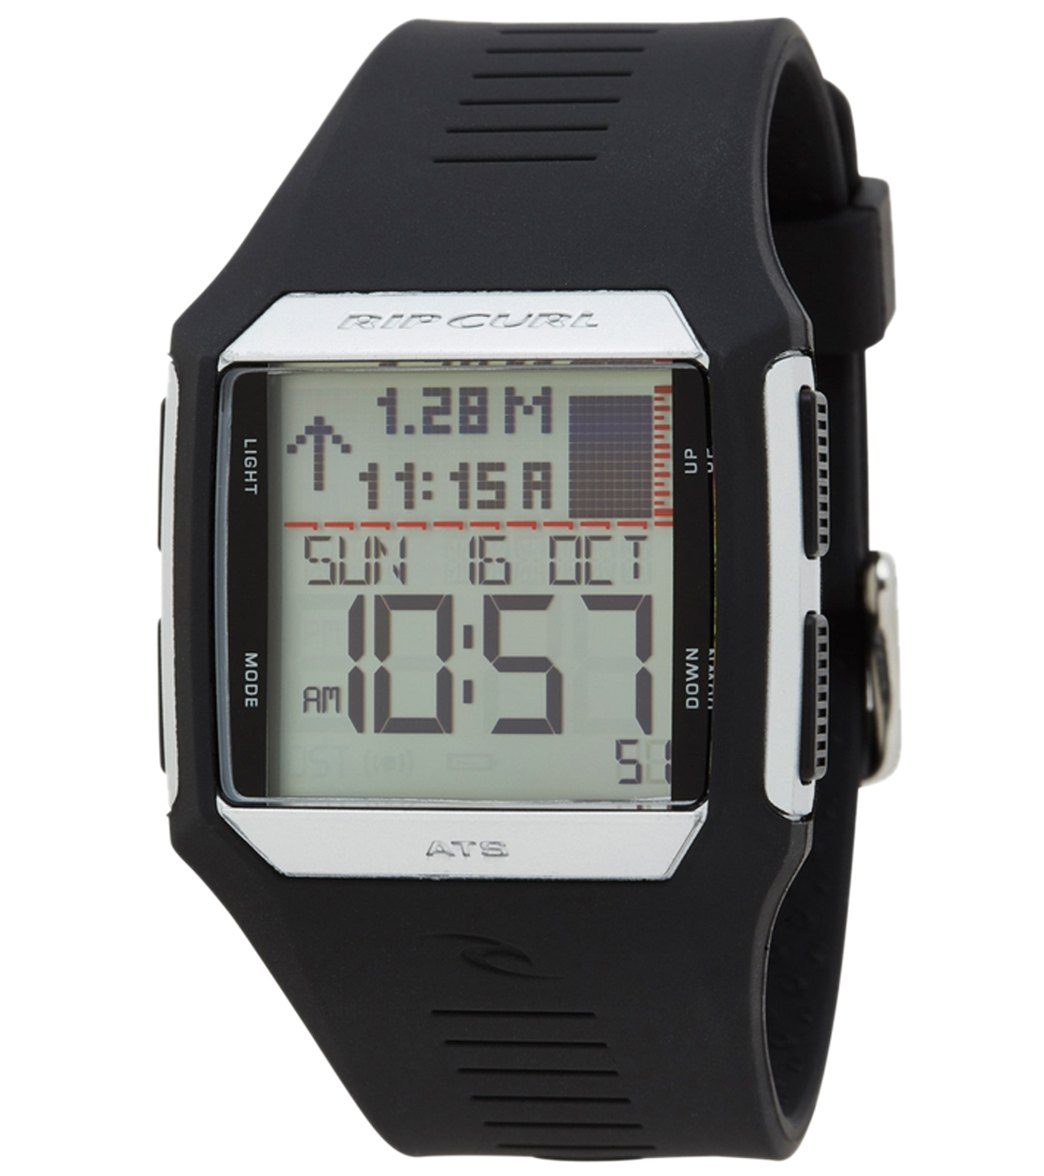 8f504ea5c6a8 Rip Curl Rifles Tide Watch at SwimOutlet.com - Free Shipping